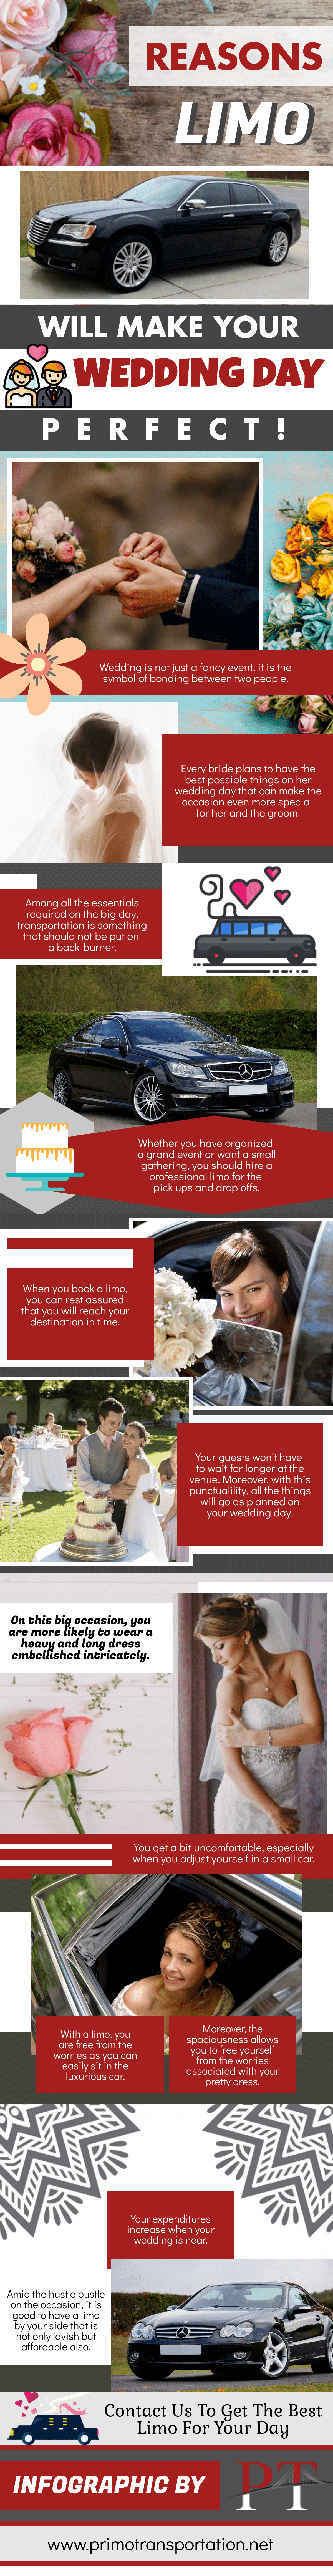 Reasons Limo Will Make Your Wedding Perfect